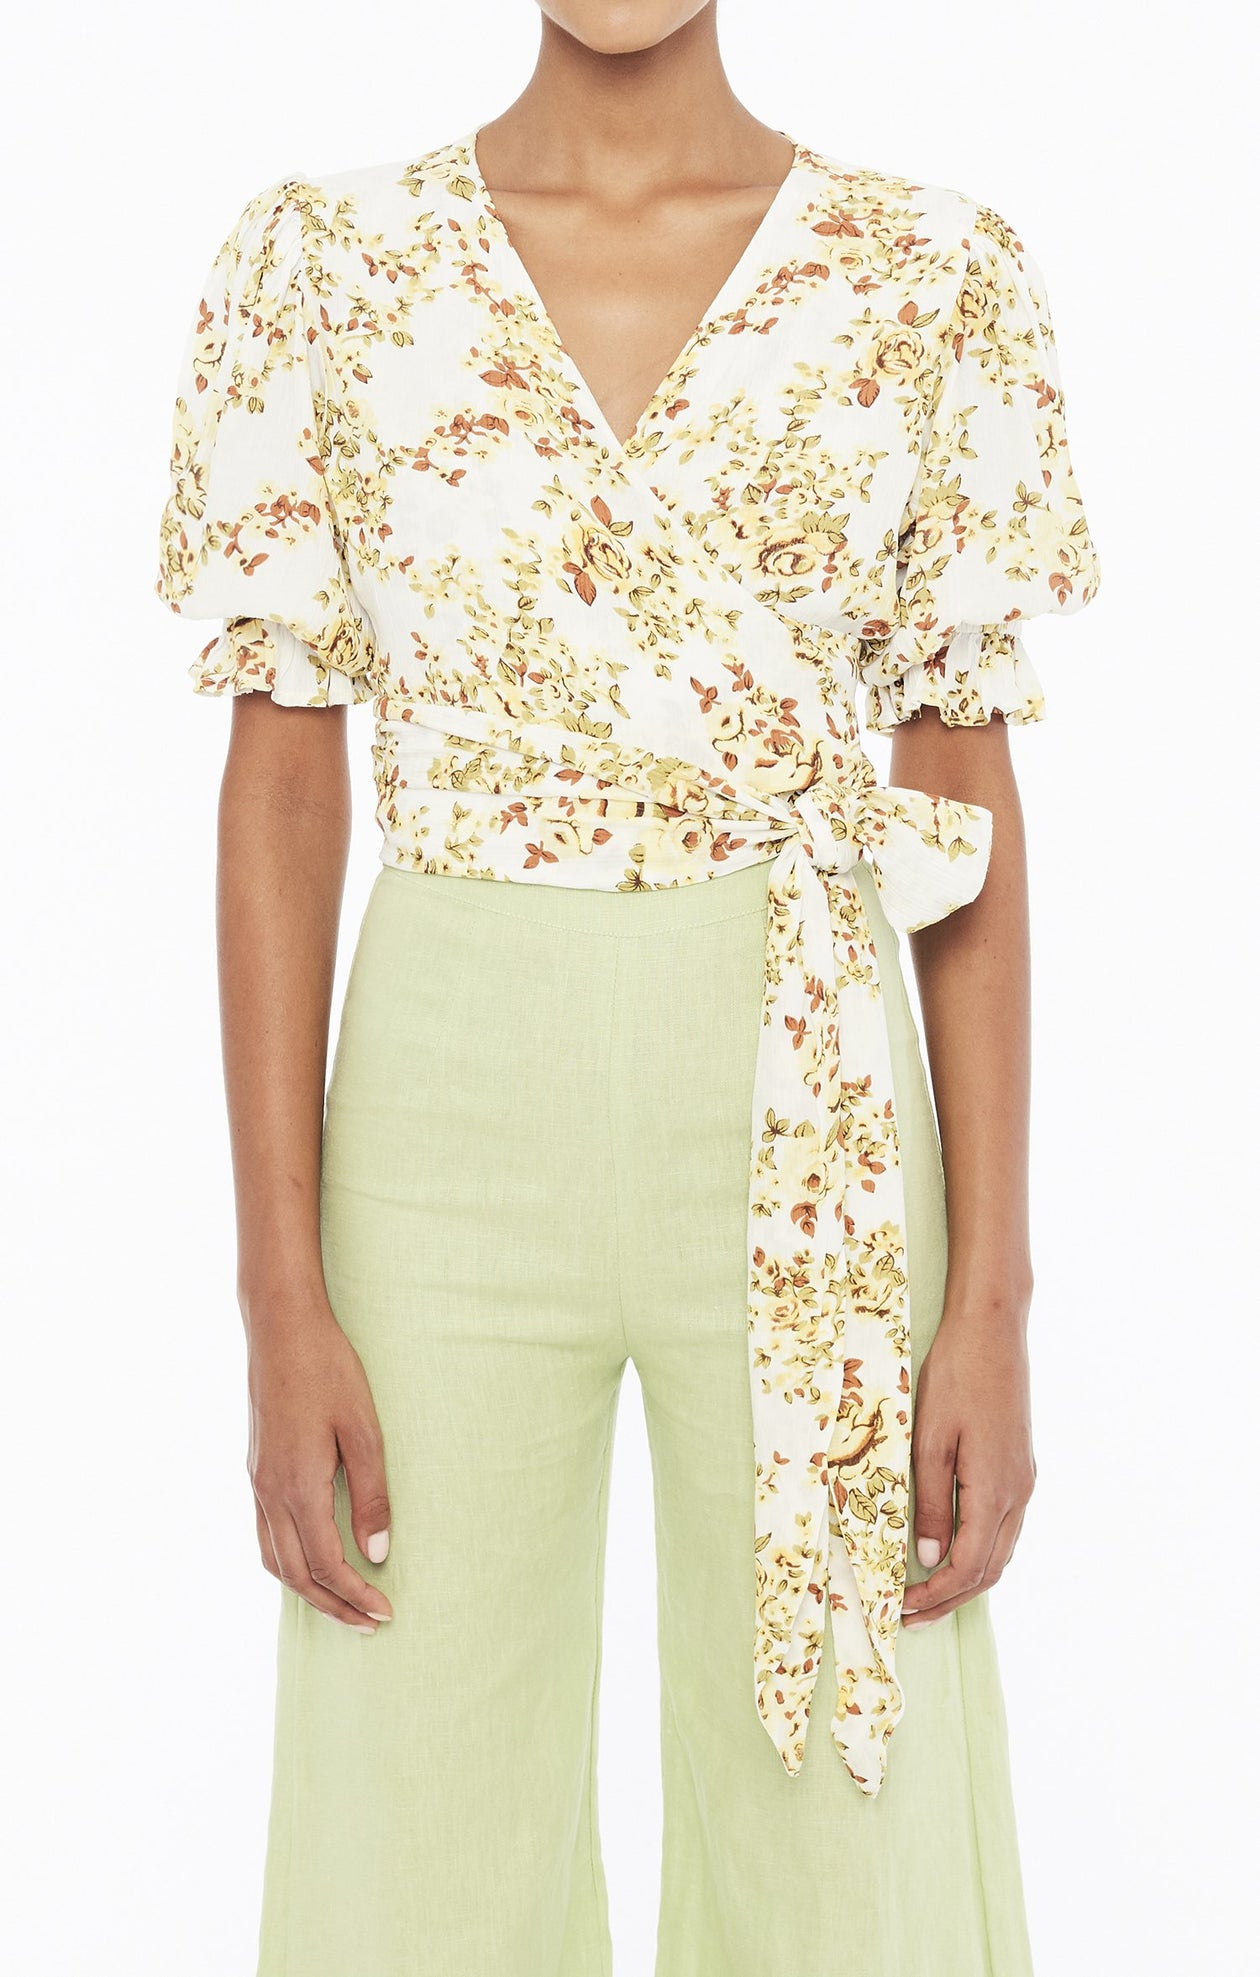 Mali Wrap Top - Goldie Floral